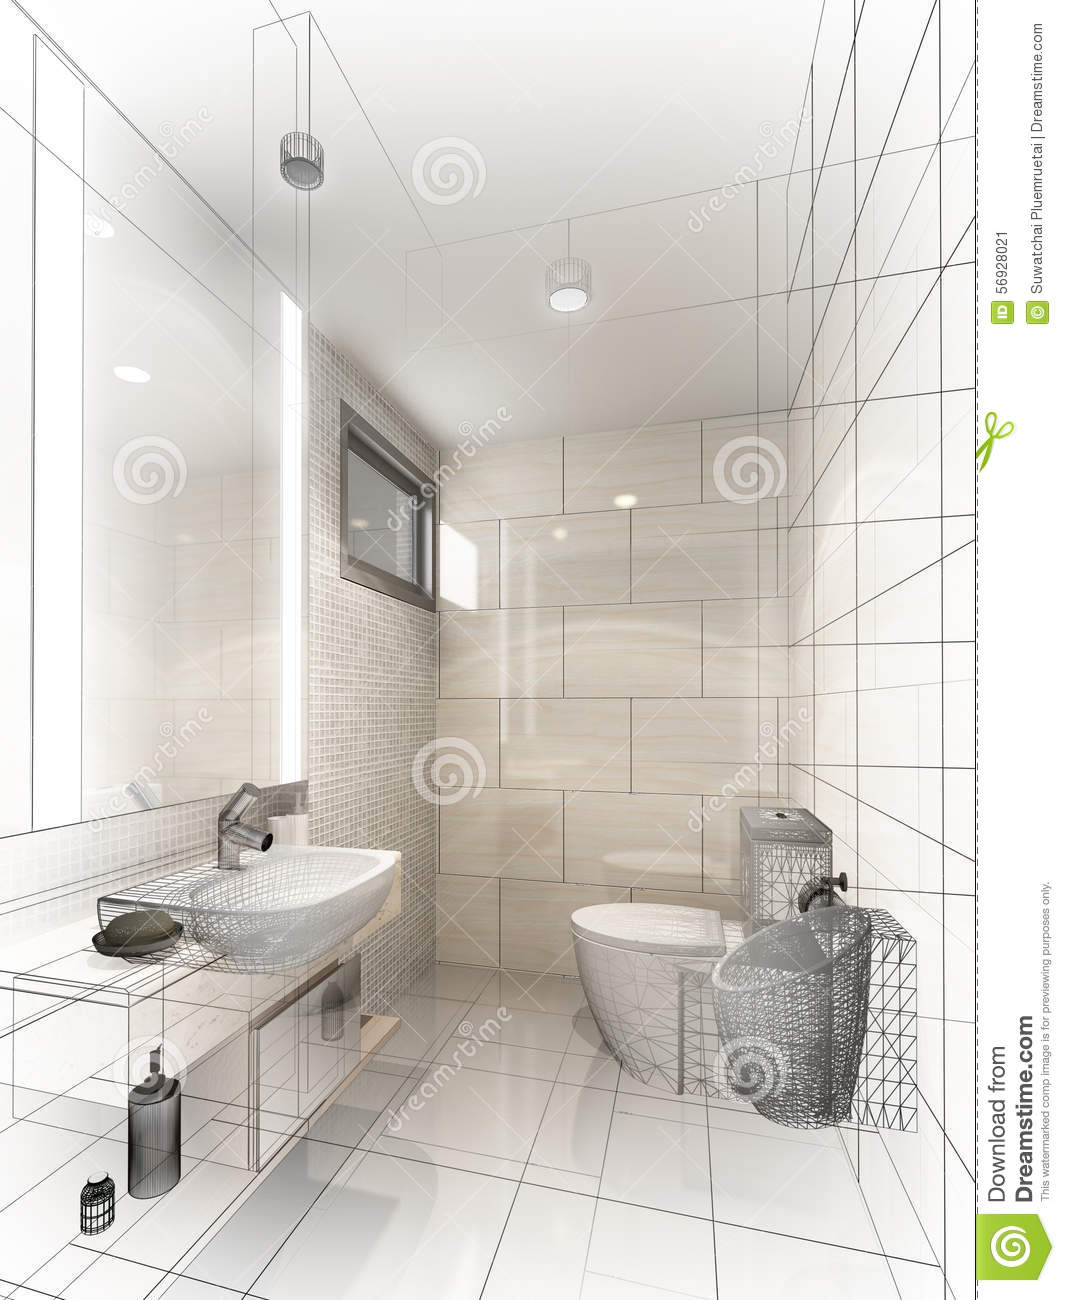 abstract sketch design of interior bathroom stock illustration image 56928021. Black Bedroom Furniture Sets. Home Design Ideas